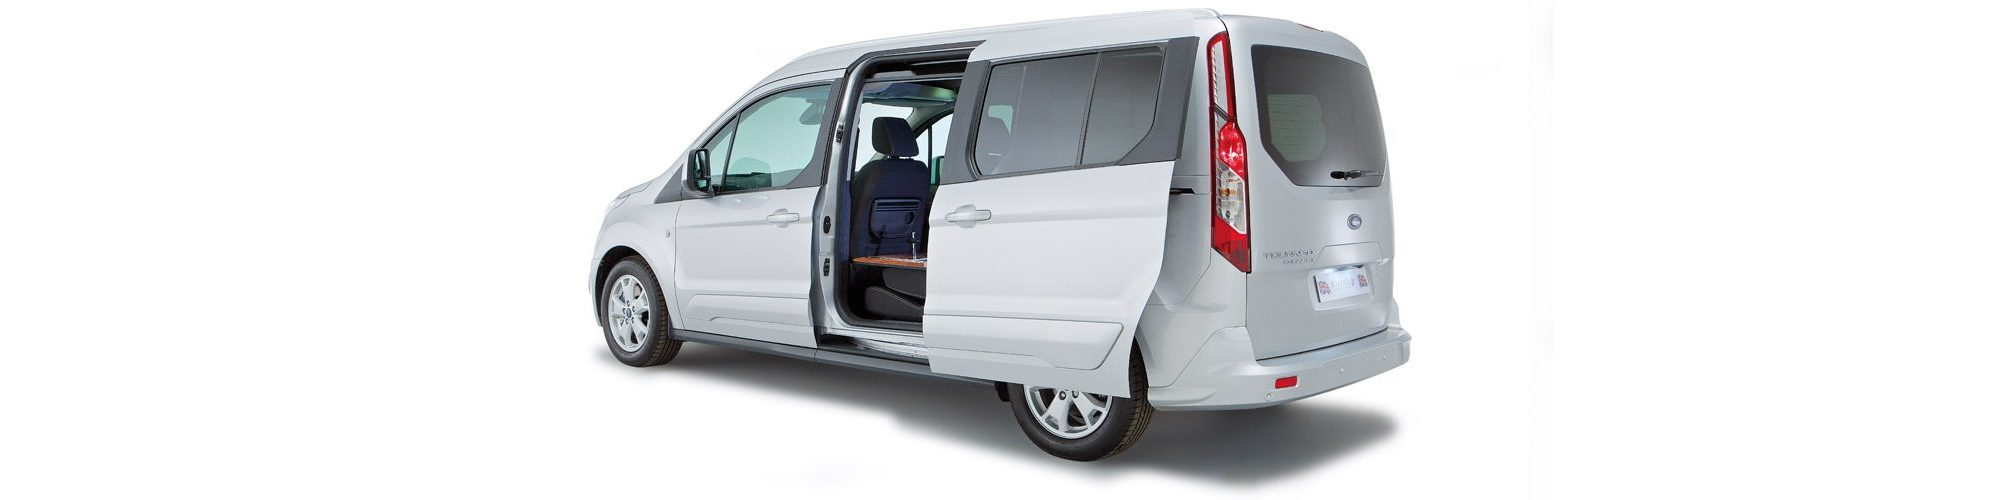 Ford Tourneo Hearsette®